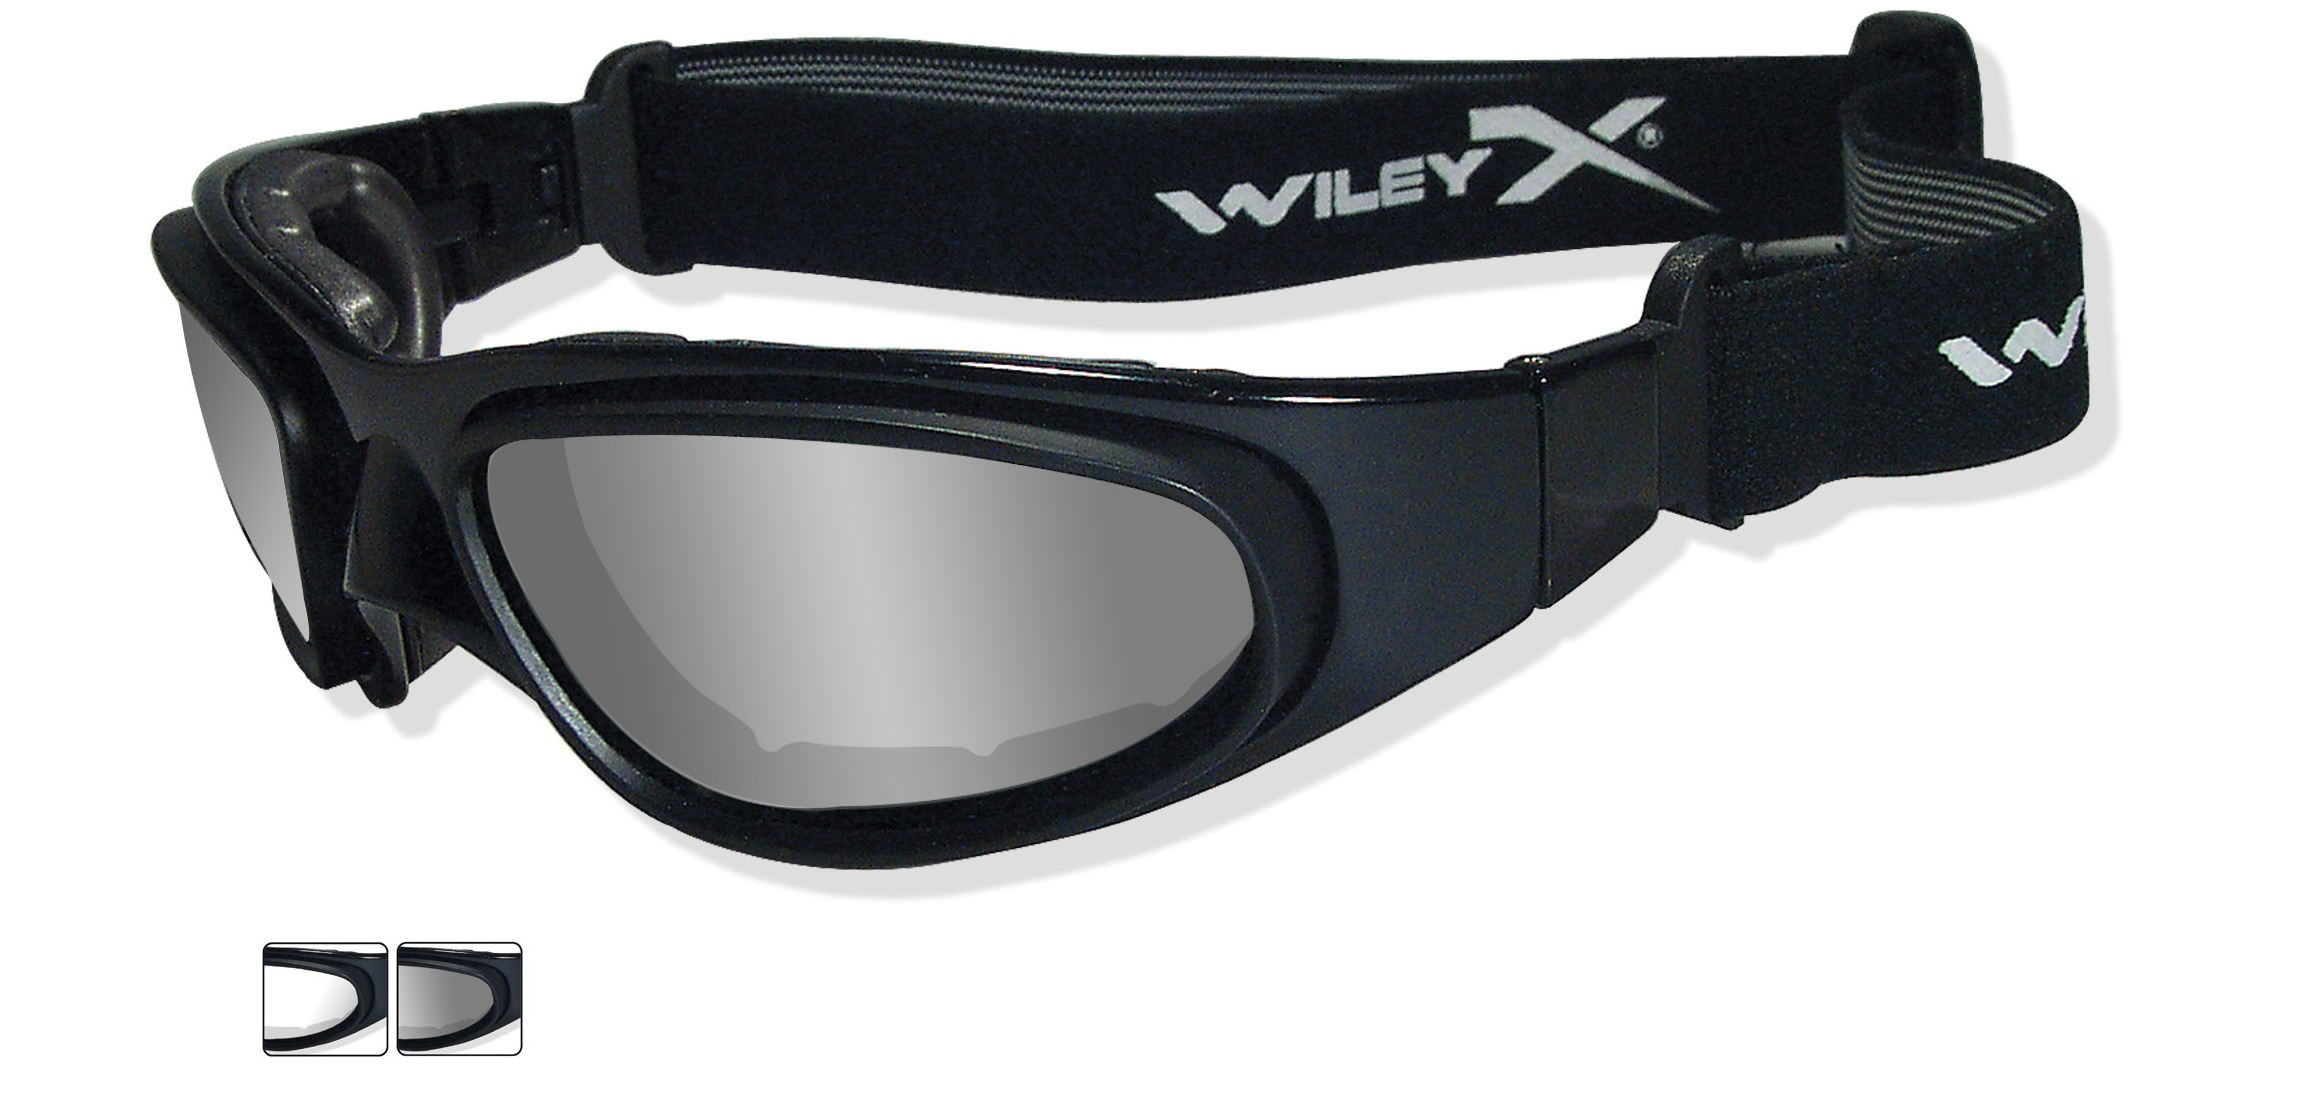 f26beb014a1 Wiley X SG-1 Sunglasses Goggles Regular Black Frame WIL-71